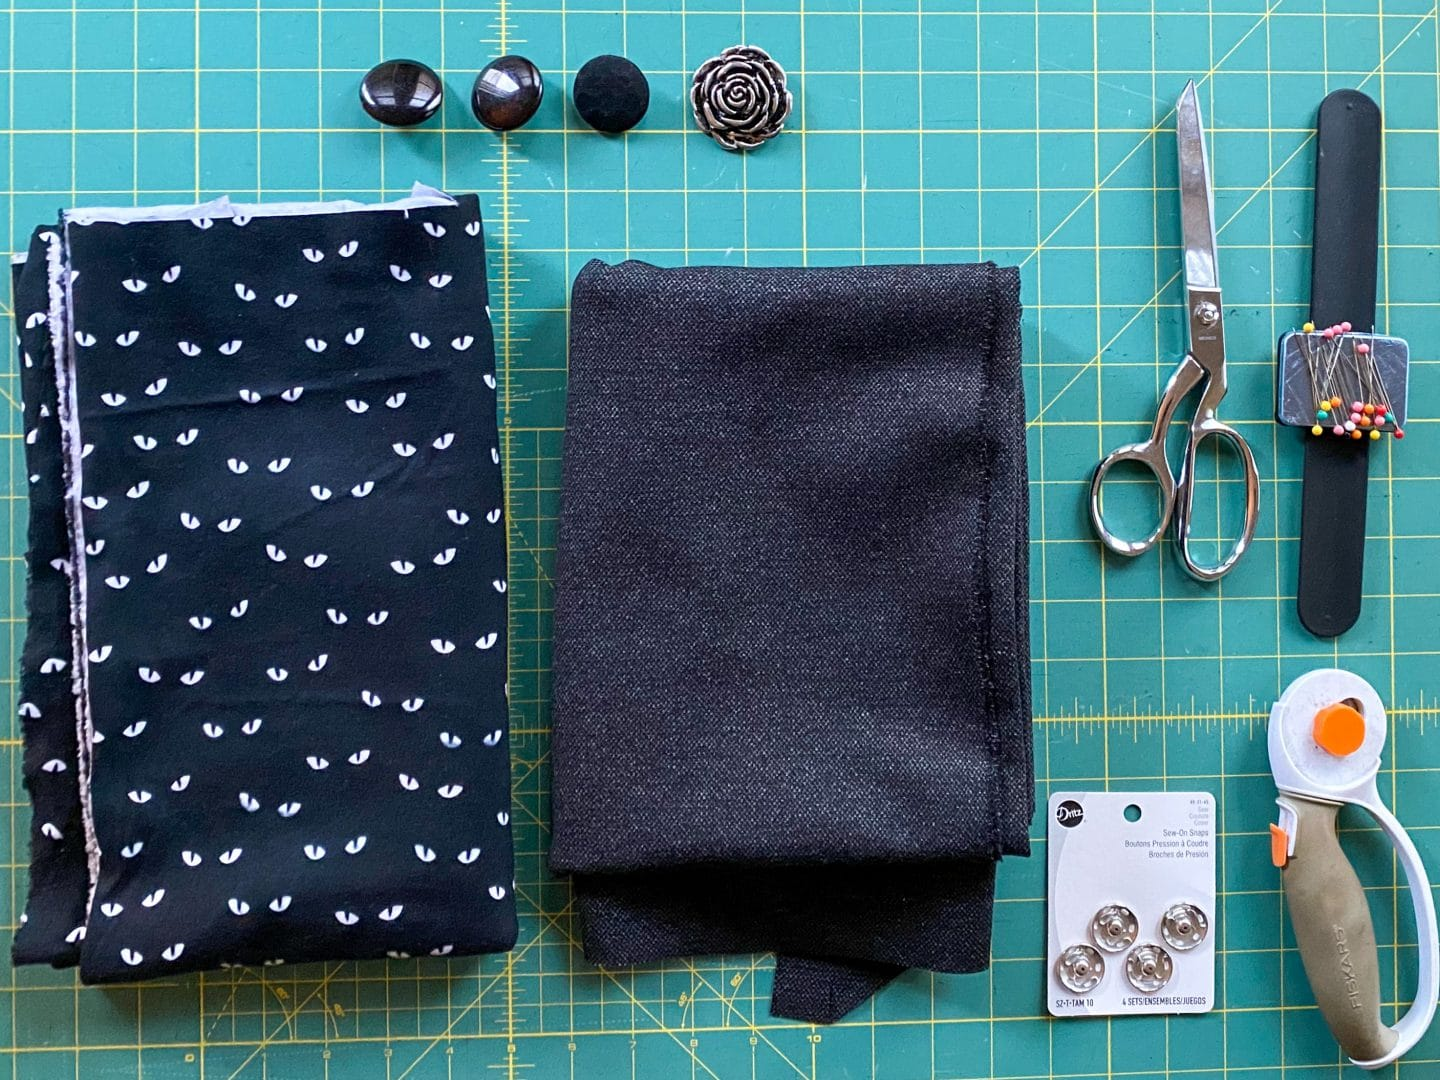 Image of two pieces of fabric, one black interlock fabric with glow-in-the-dark eyes, one piece of ponte de roma tweed, buttons, scissors, pins, snaps, and rotary cutter on a green cutting mat